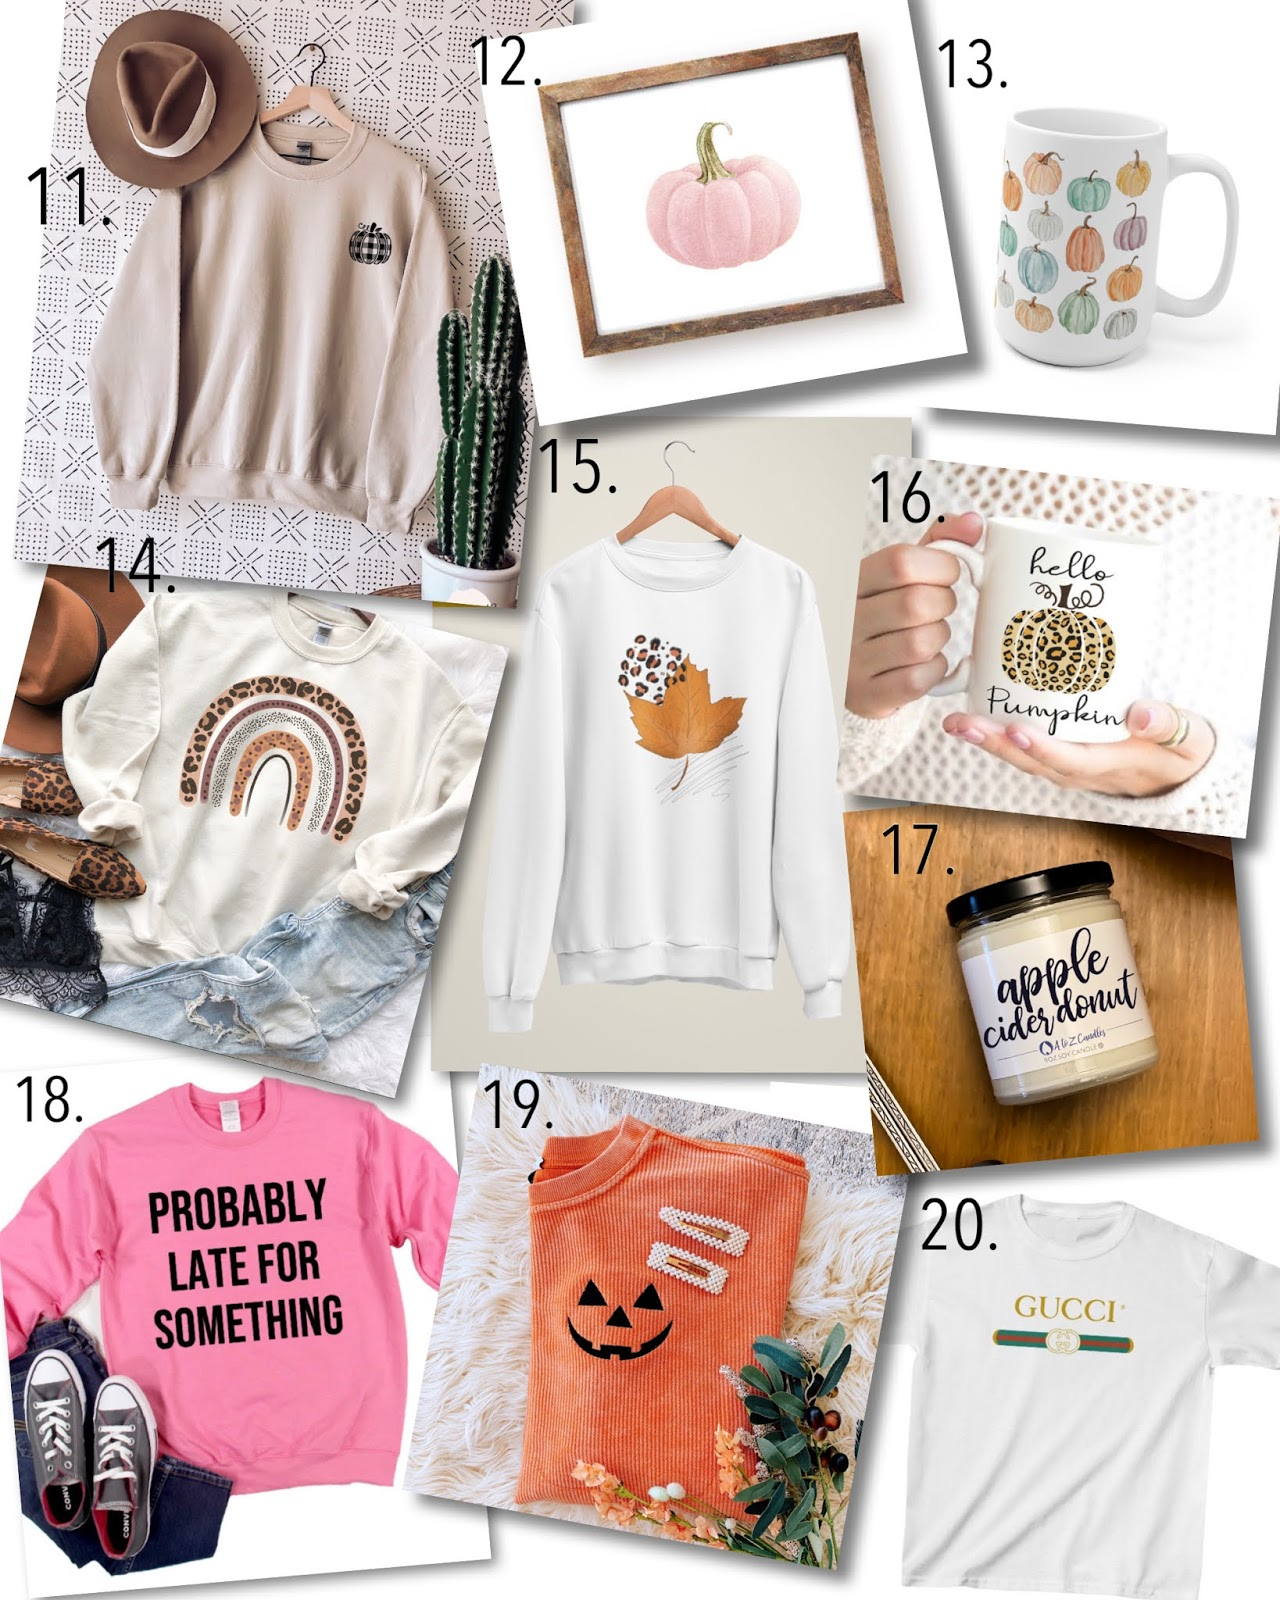 Recent Etsy Finds: Graphic Tees, Fall Sweatshirts, Fall decor and More - Something Delightful Blog